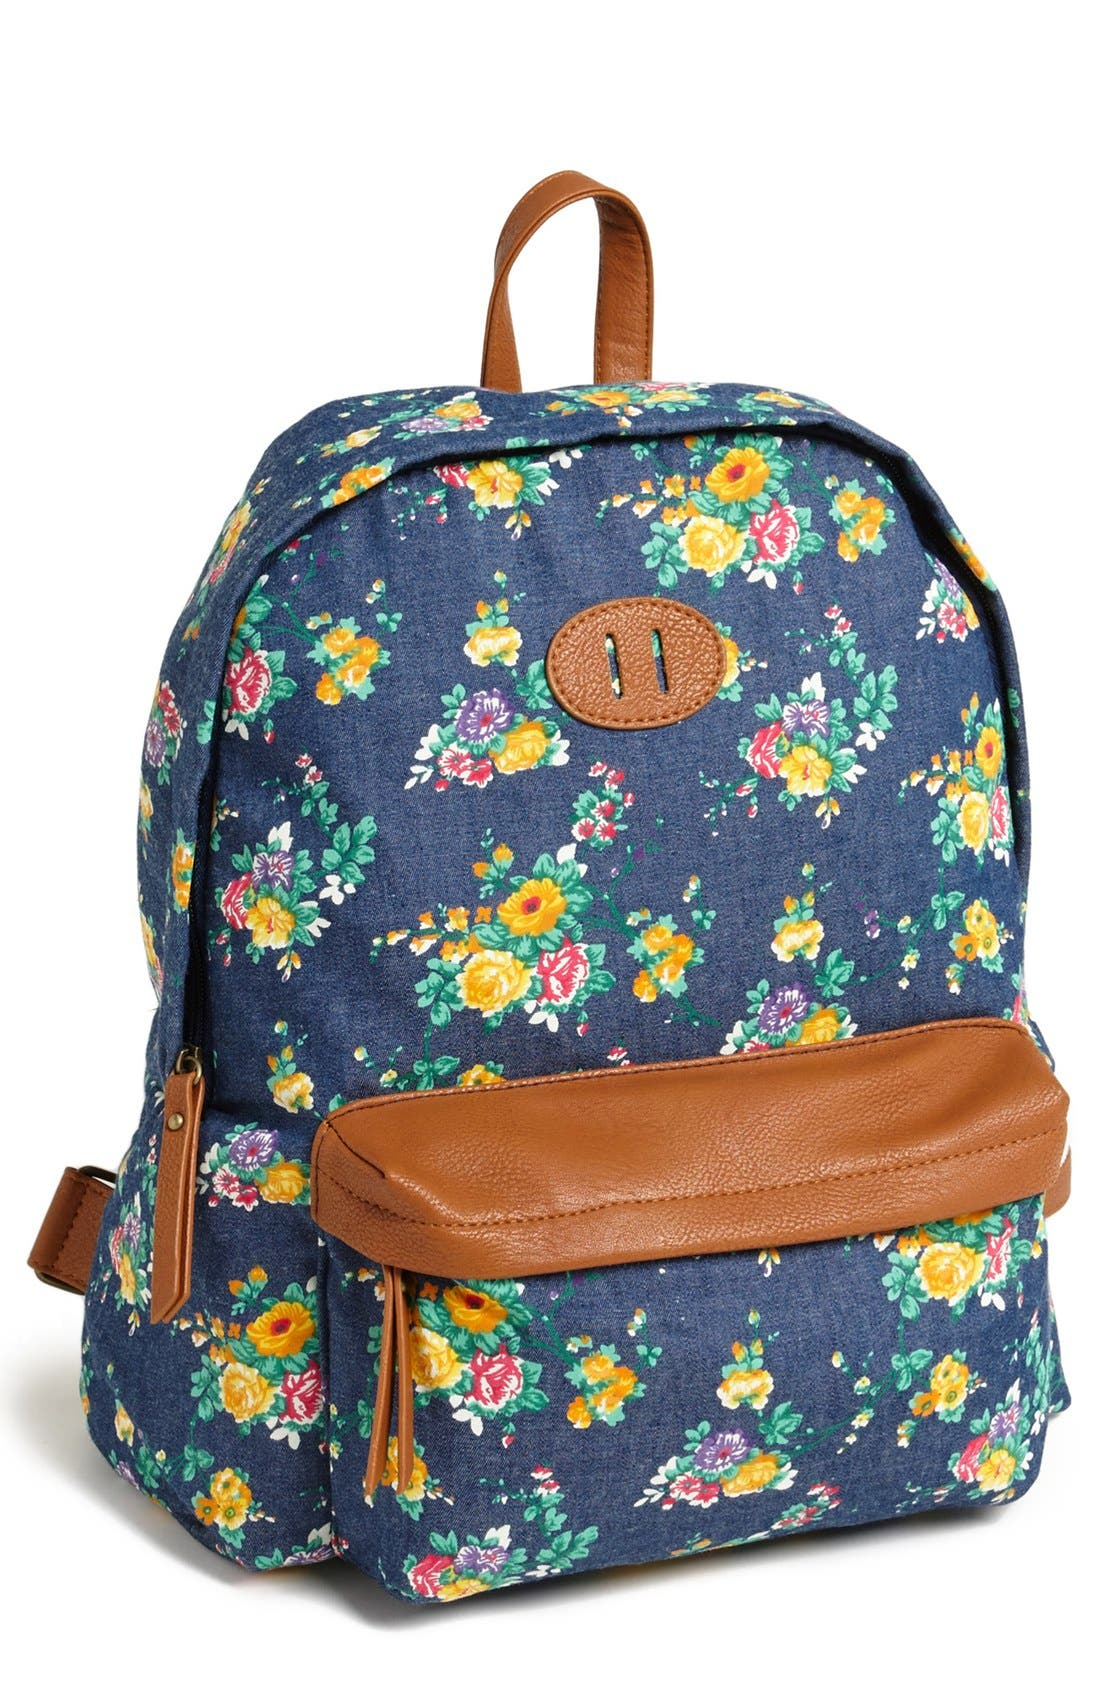 Alternate Image 1 Selected - Steve Madden Canvas Backpack